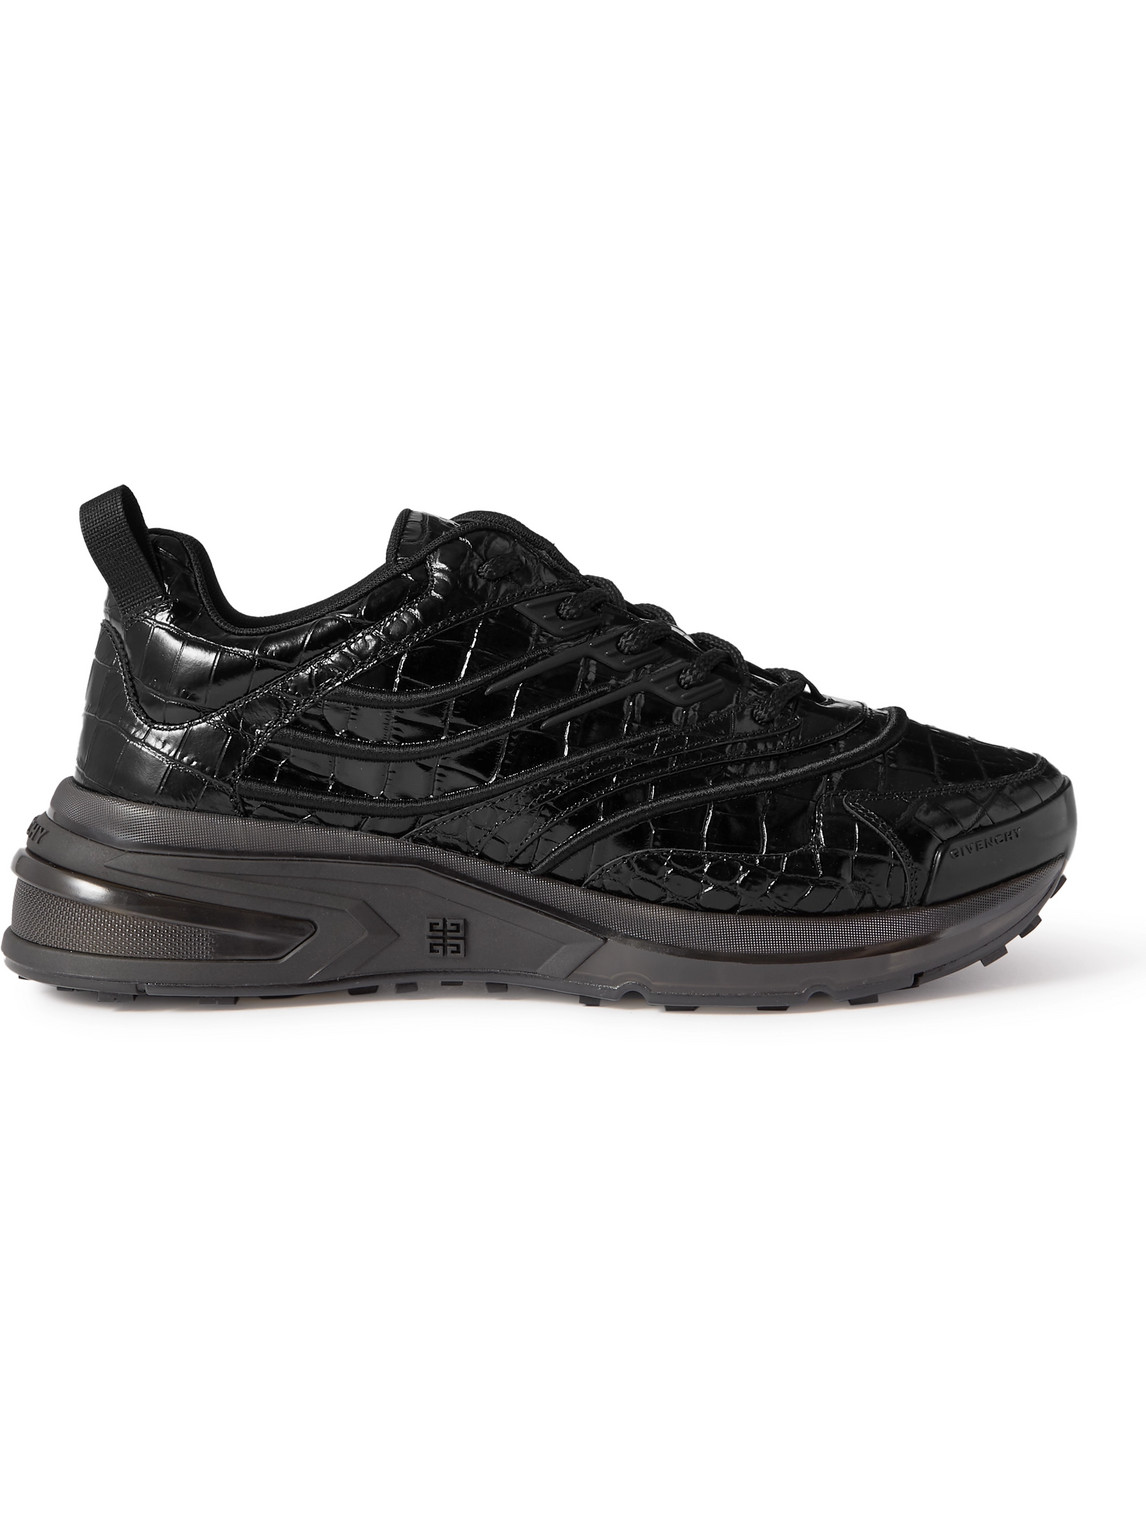 Givenchy Leathers GIV 1 CROC-EFFECT LEATHER SNEAKERS